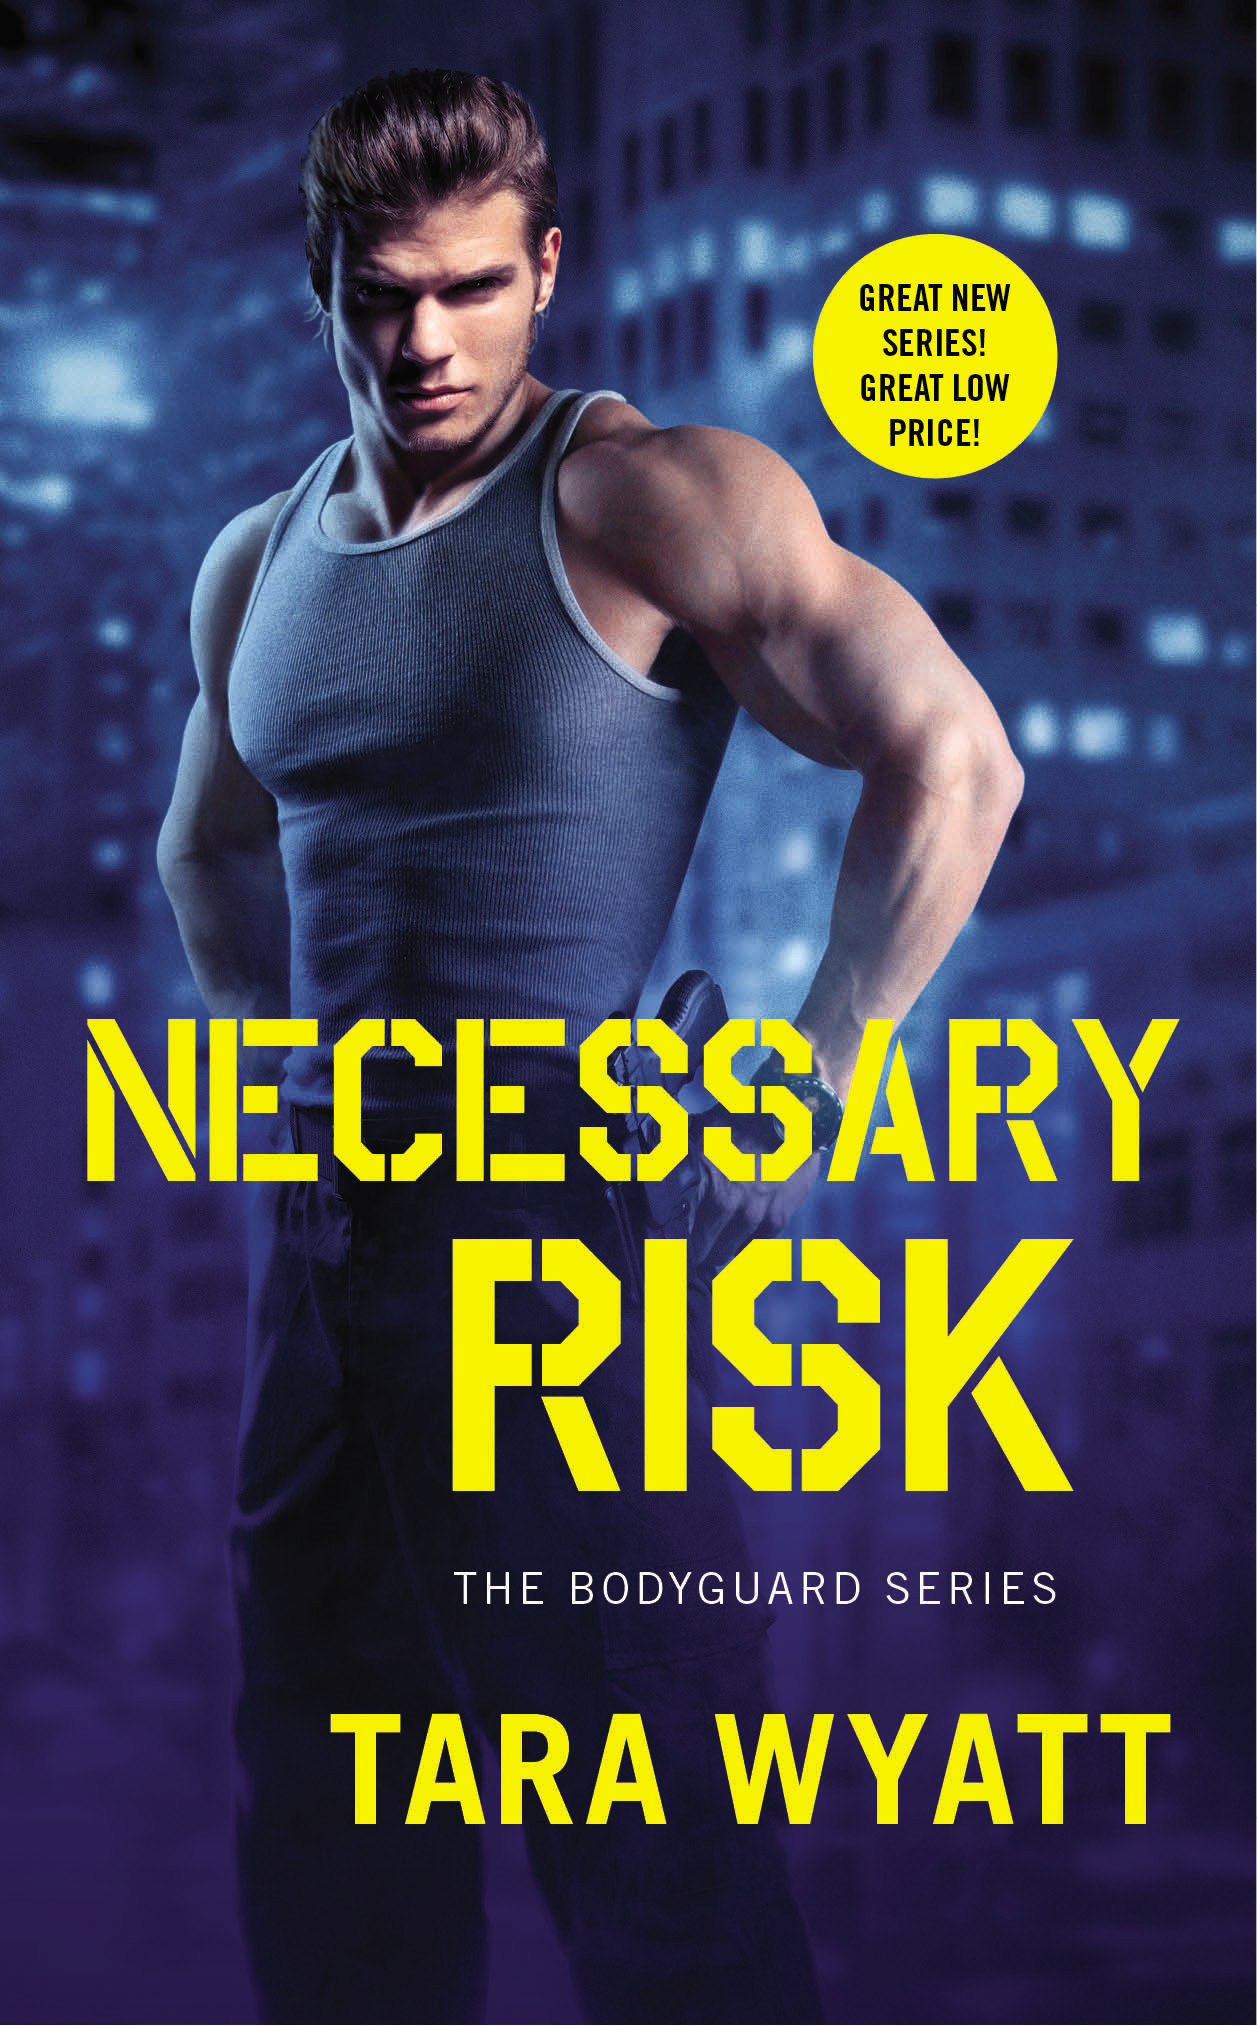 Necessary Risk by Tara Wyatt The Bodyguard Series Book 1 Romantic Suspense